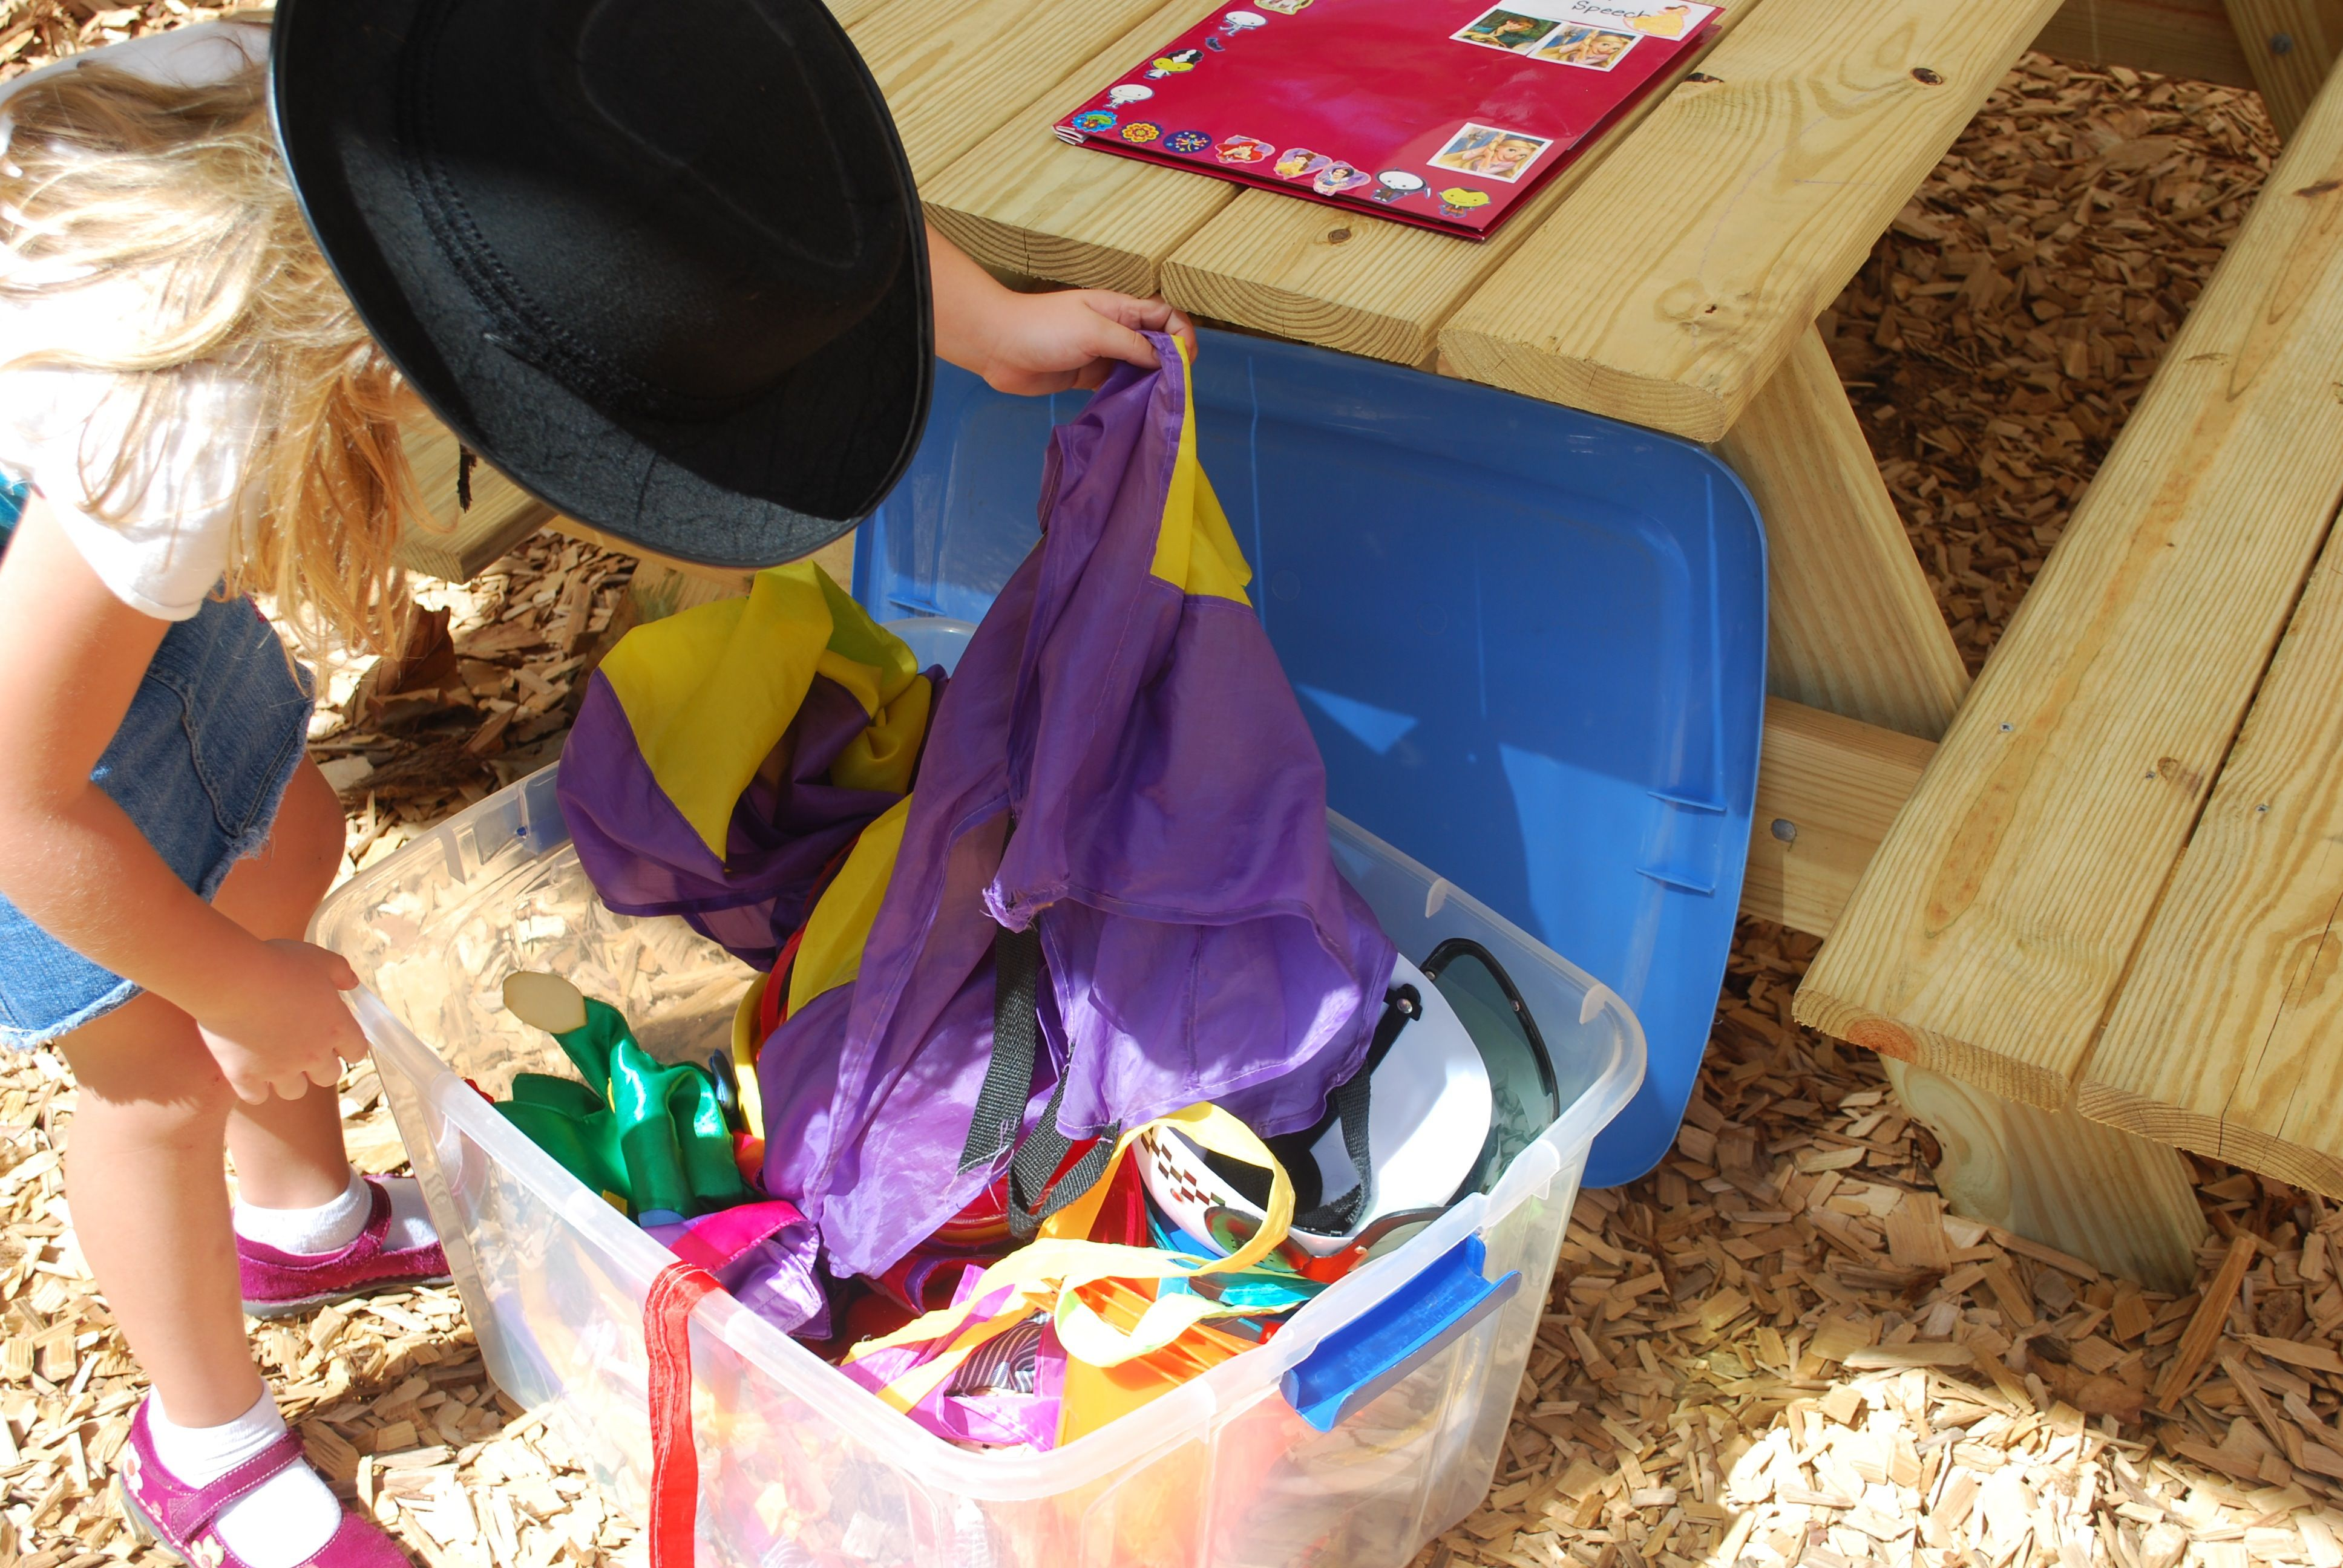 Perfect combination of nature and nurture. Fill a large Rubbermaid with different items (hats, scarfs, binoculars, telescopes, ribbons, capes, etc.). Let the child explore the bin outside, to express themselves in different ways.